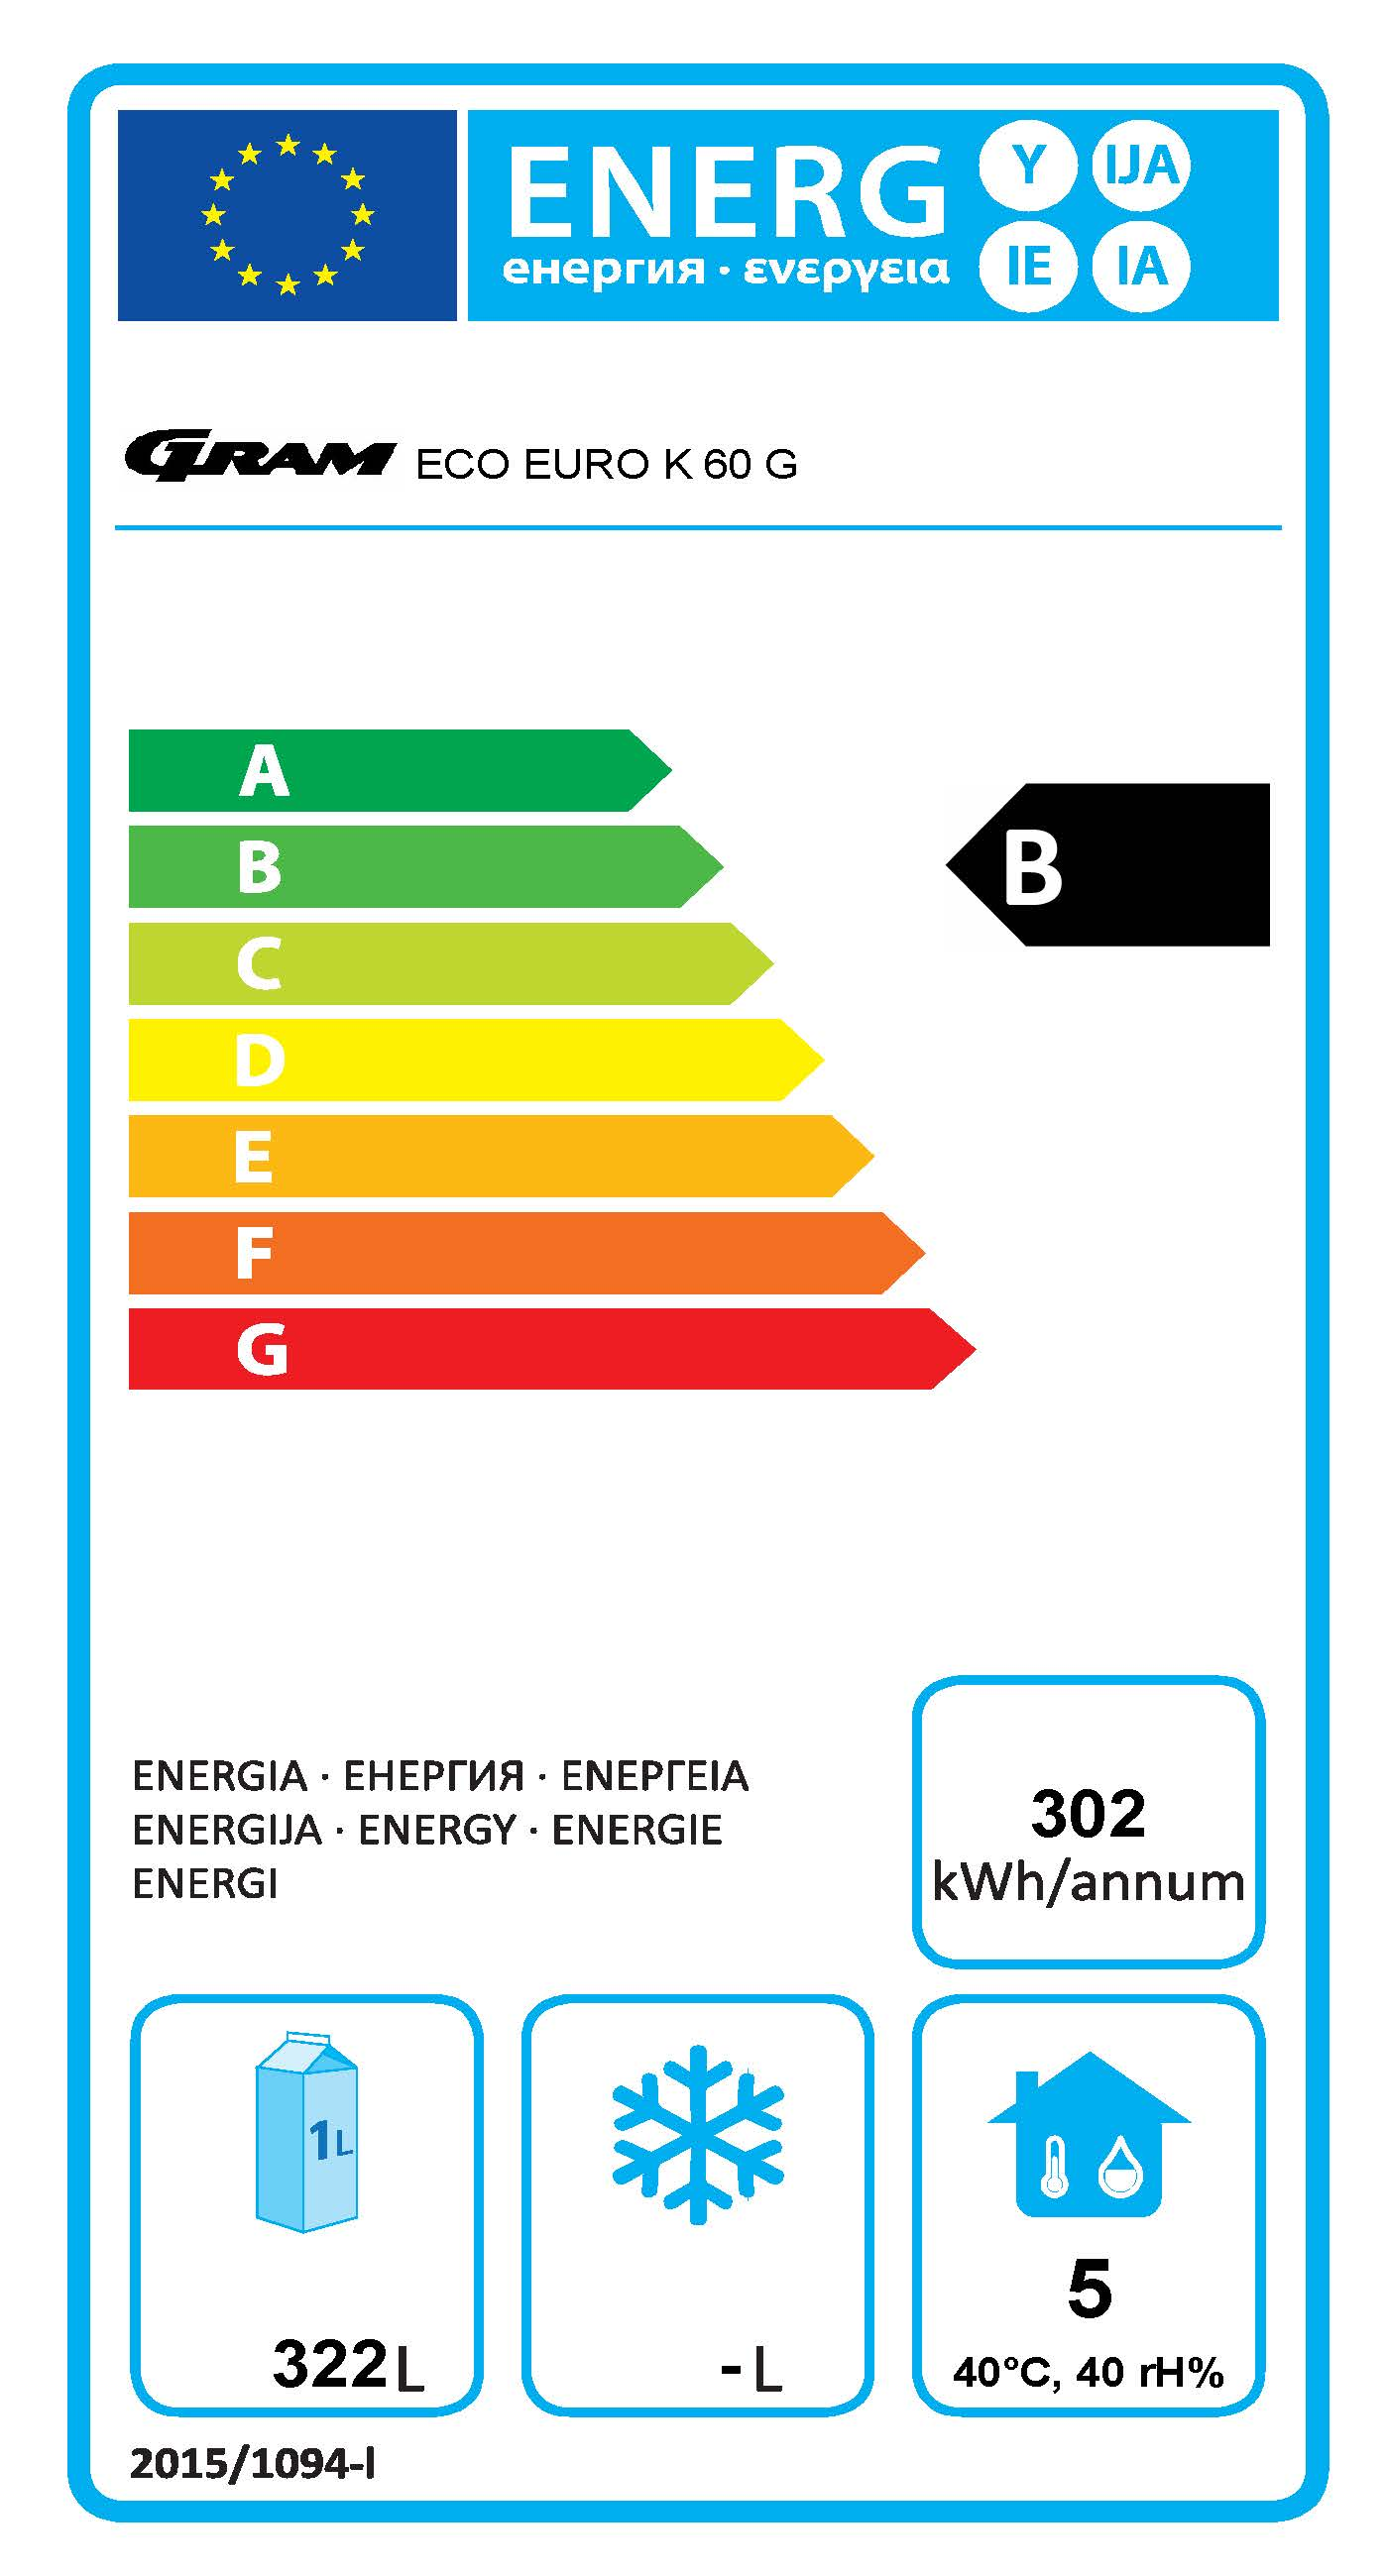 ECO EURO K 60 LAG C1 4N 465 Ltr Upright Refrigerator Energy Rating